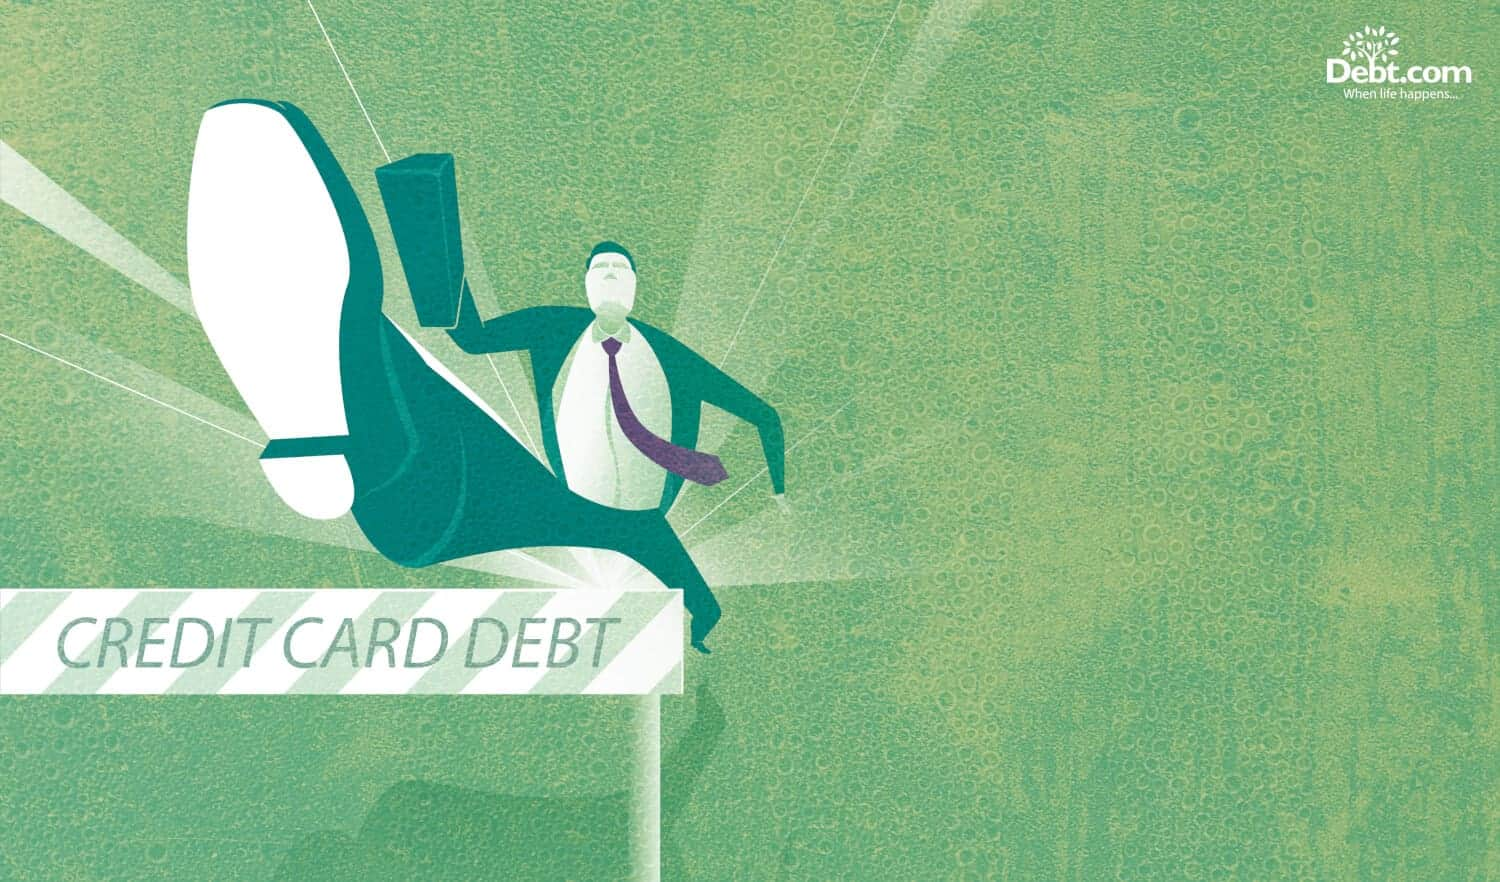 Overcome the hurdle of high interest rate credit card debt